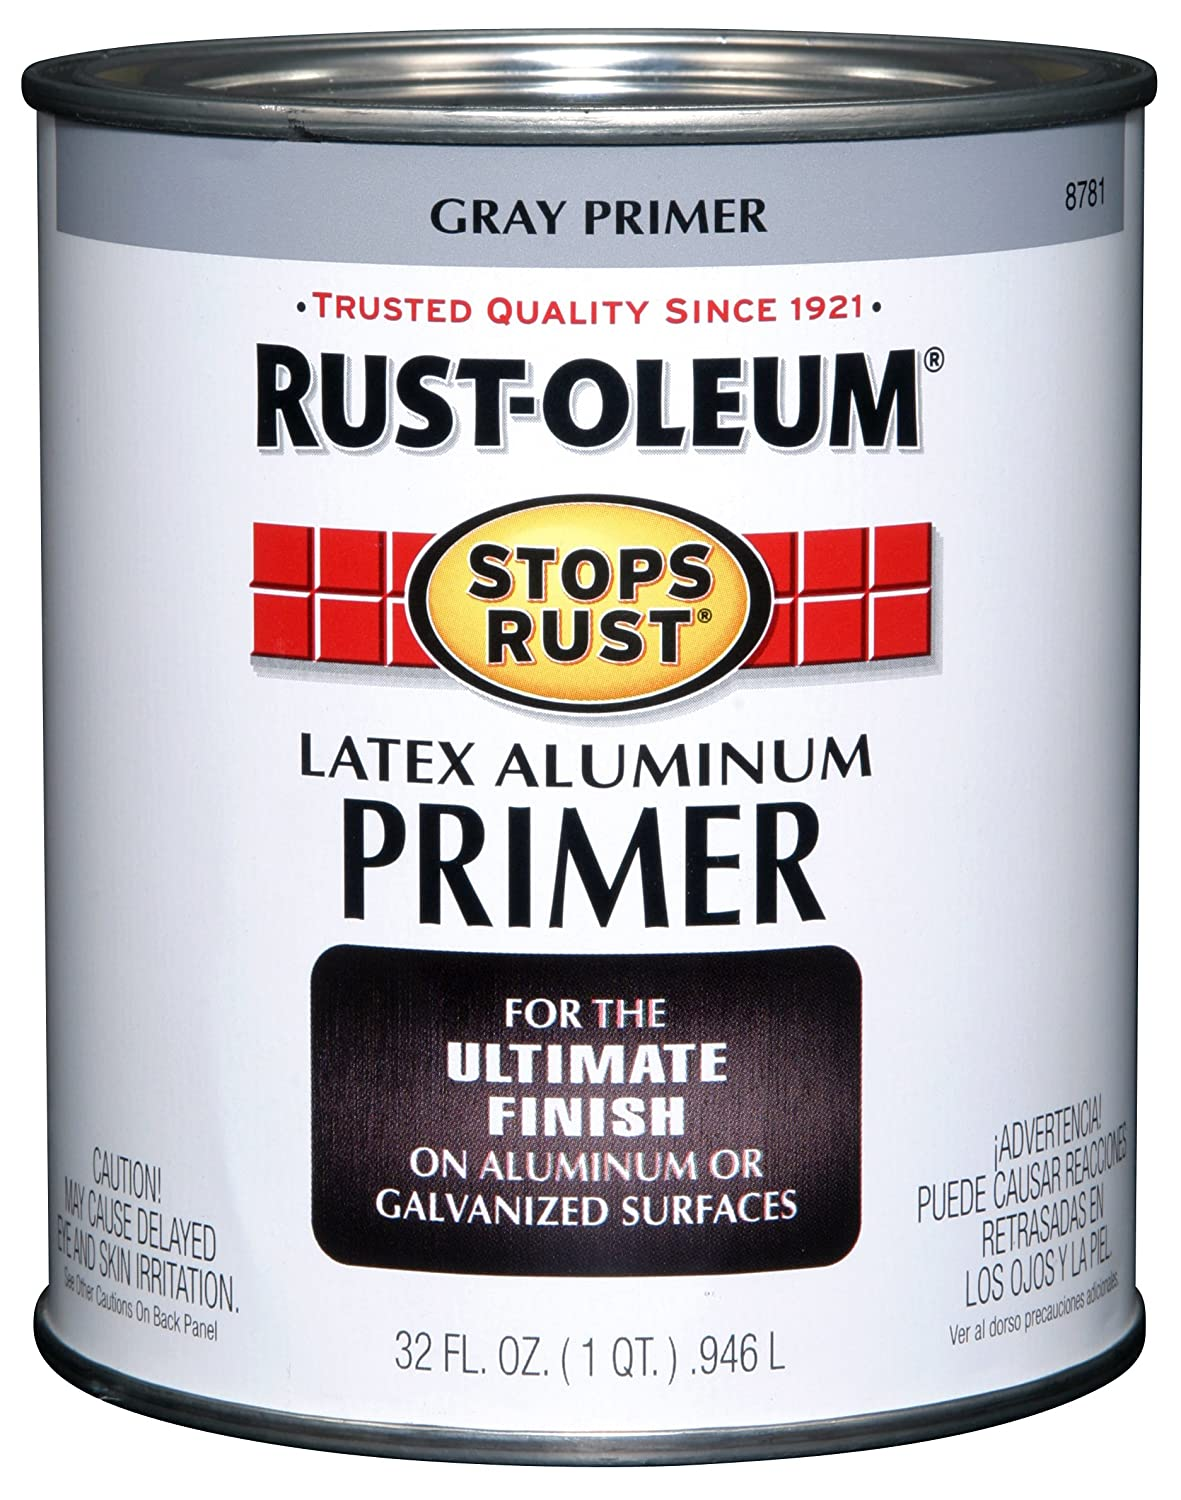 Paint Primer Kilz Primer Spray Paint Amy Paint Primer Reviews Best Interior House Paint